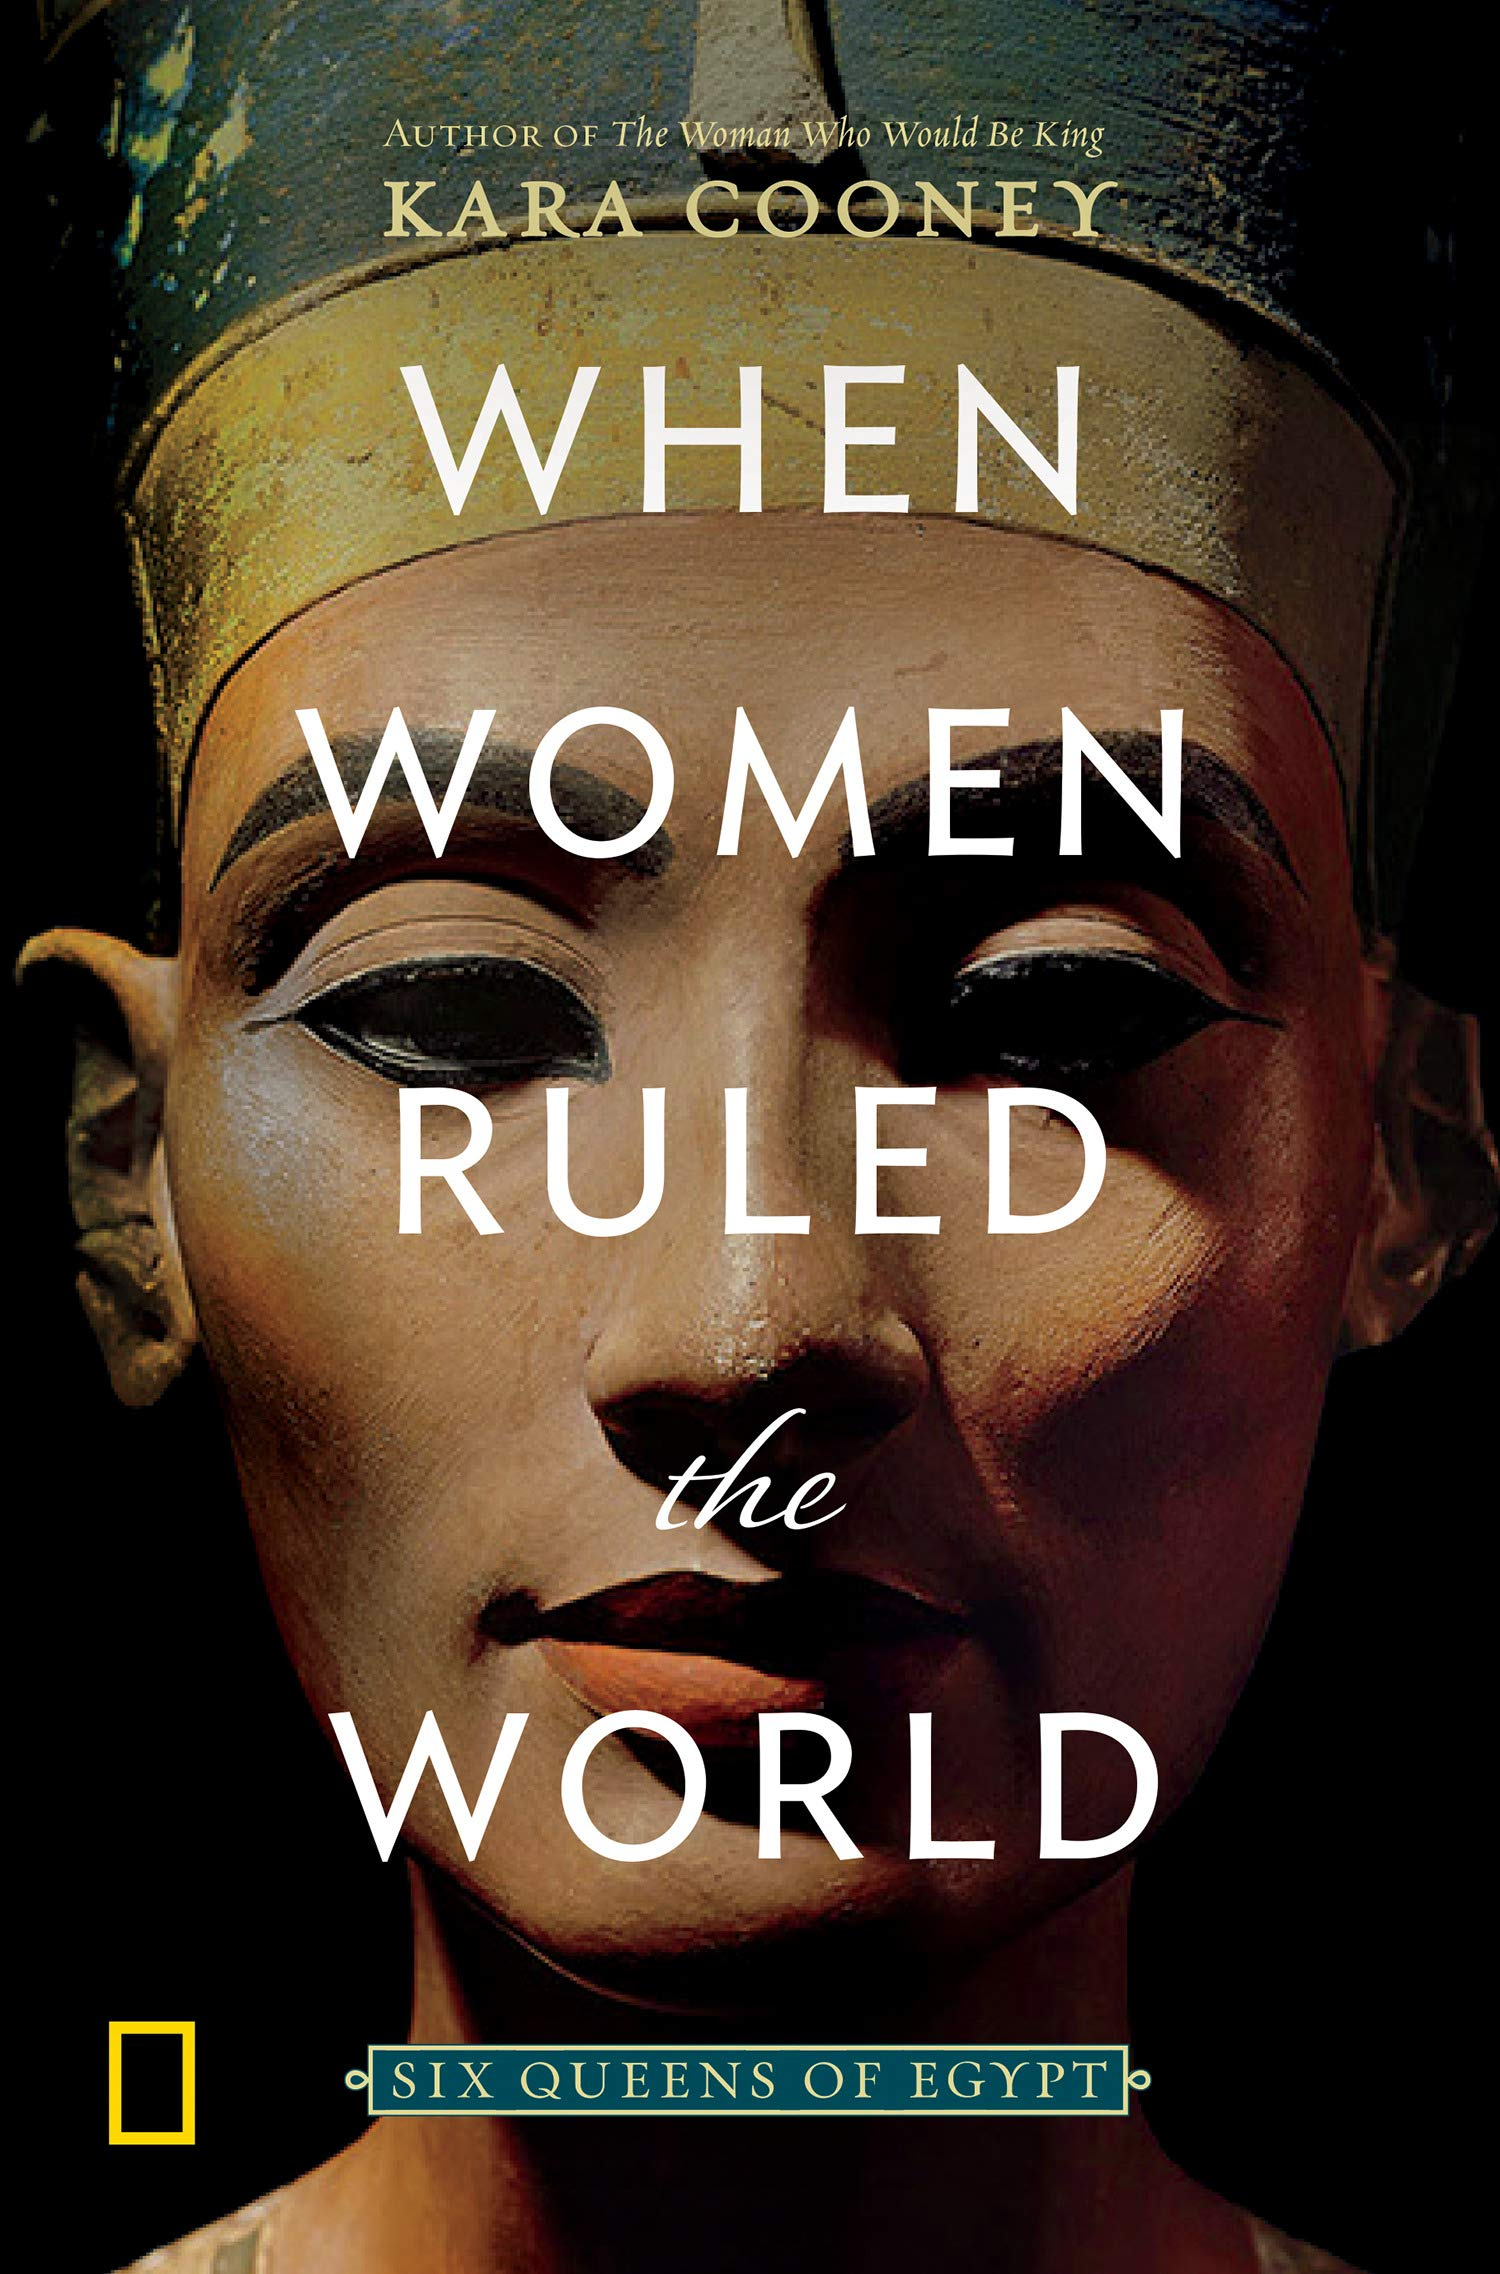 Book cover of When Women Ruled the World